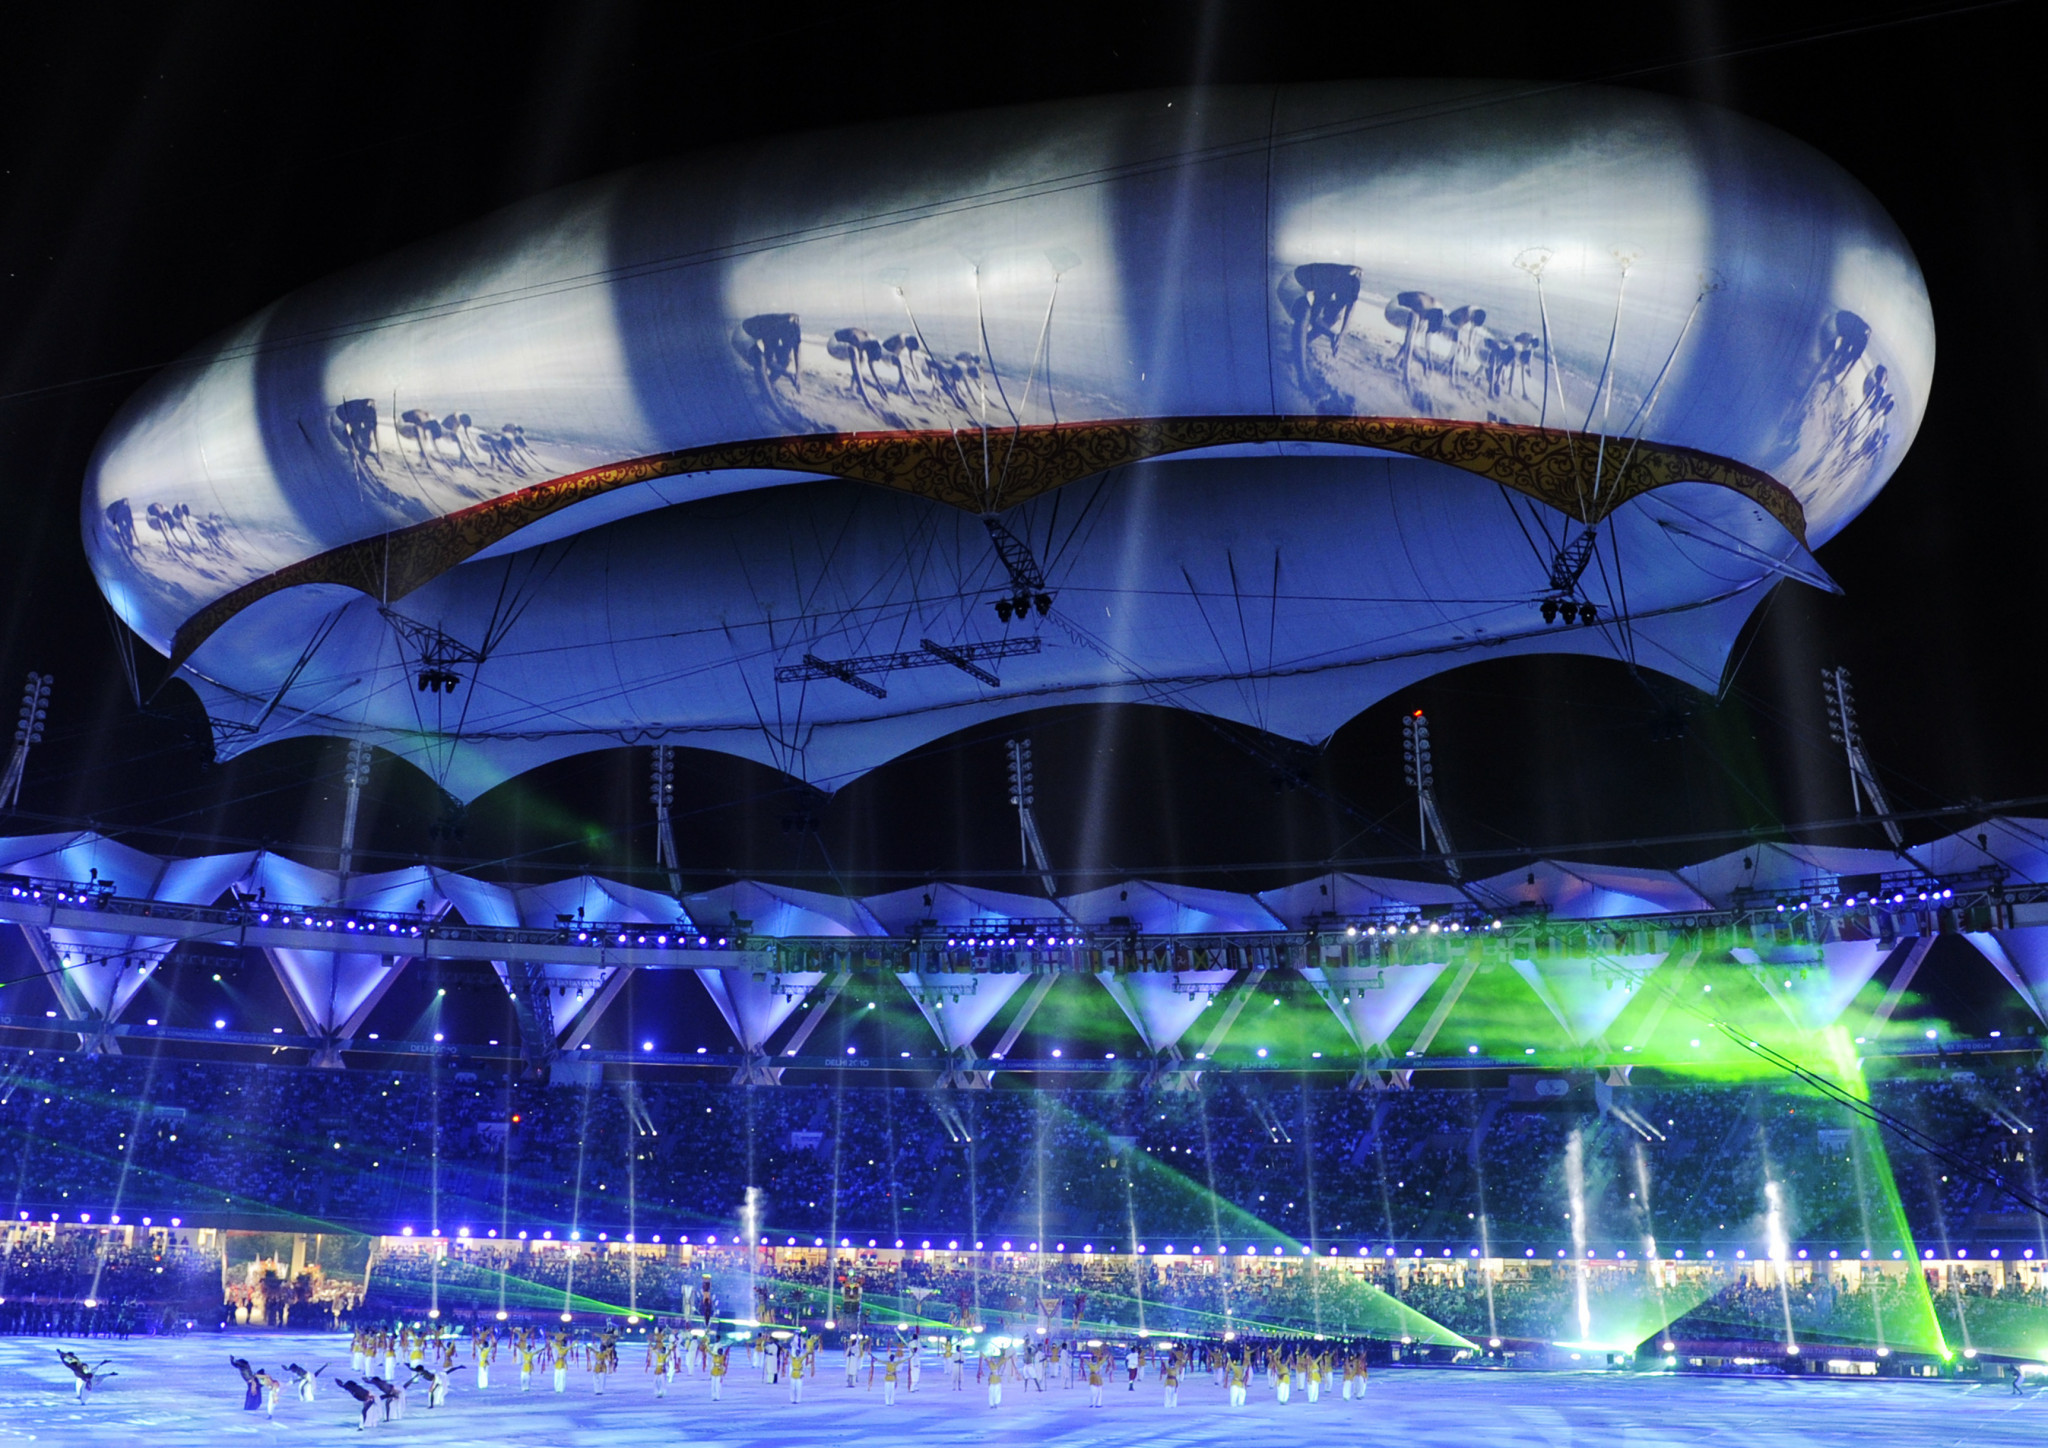 Indian dancers perform below the aerostat at the closing ceremony of the XIX Commonwealth Games at Jawarharlal Nehru Stadium in New Delhi on October 14, 2010 ©Getty Images